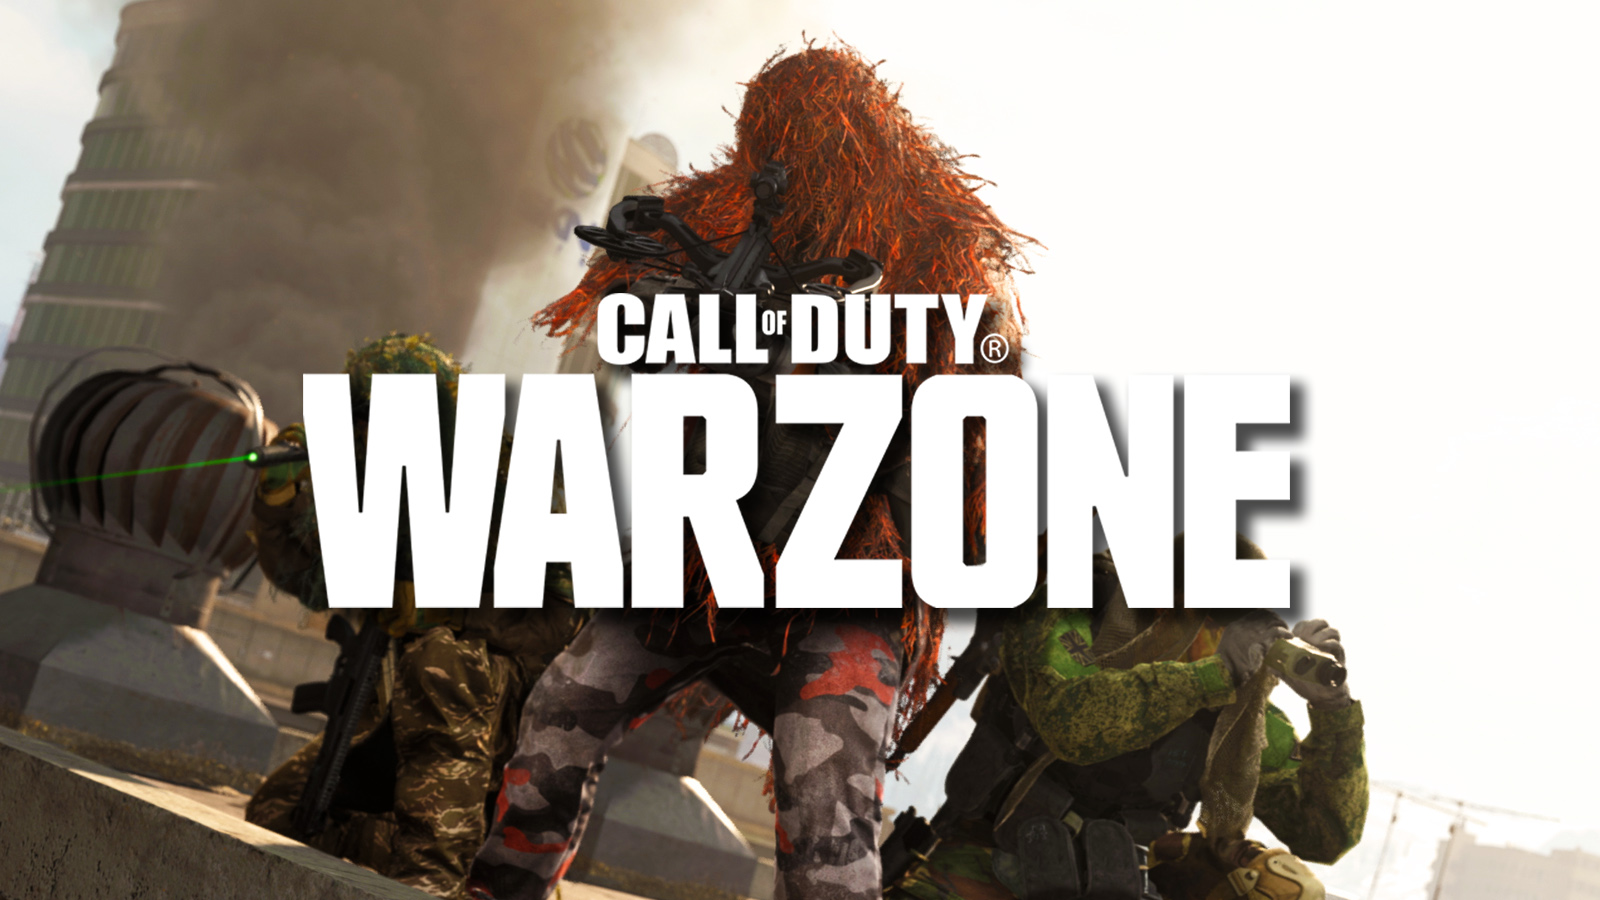 call of duty warzone map wallpaper